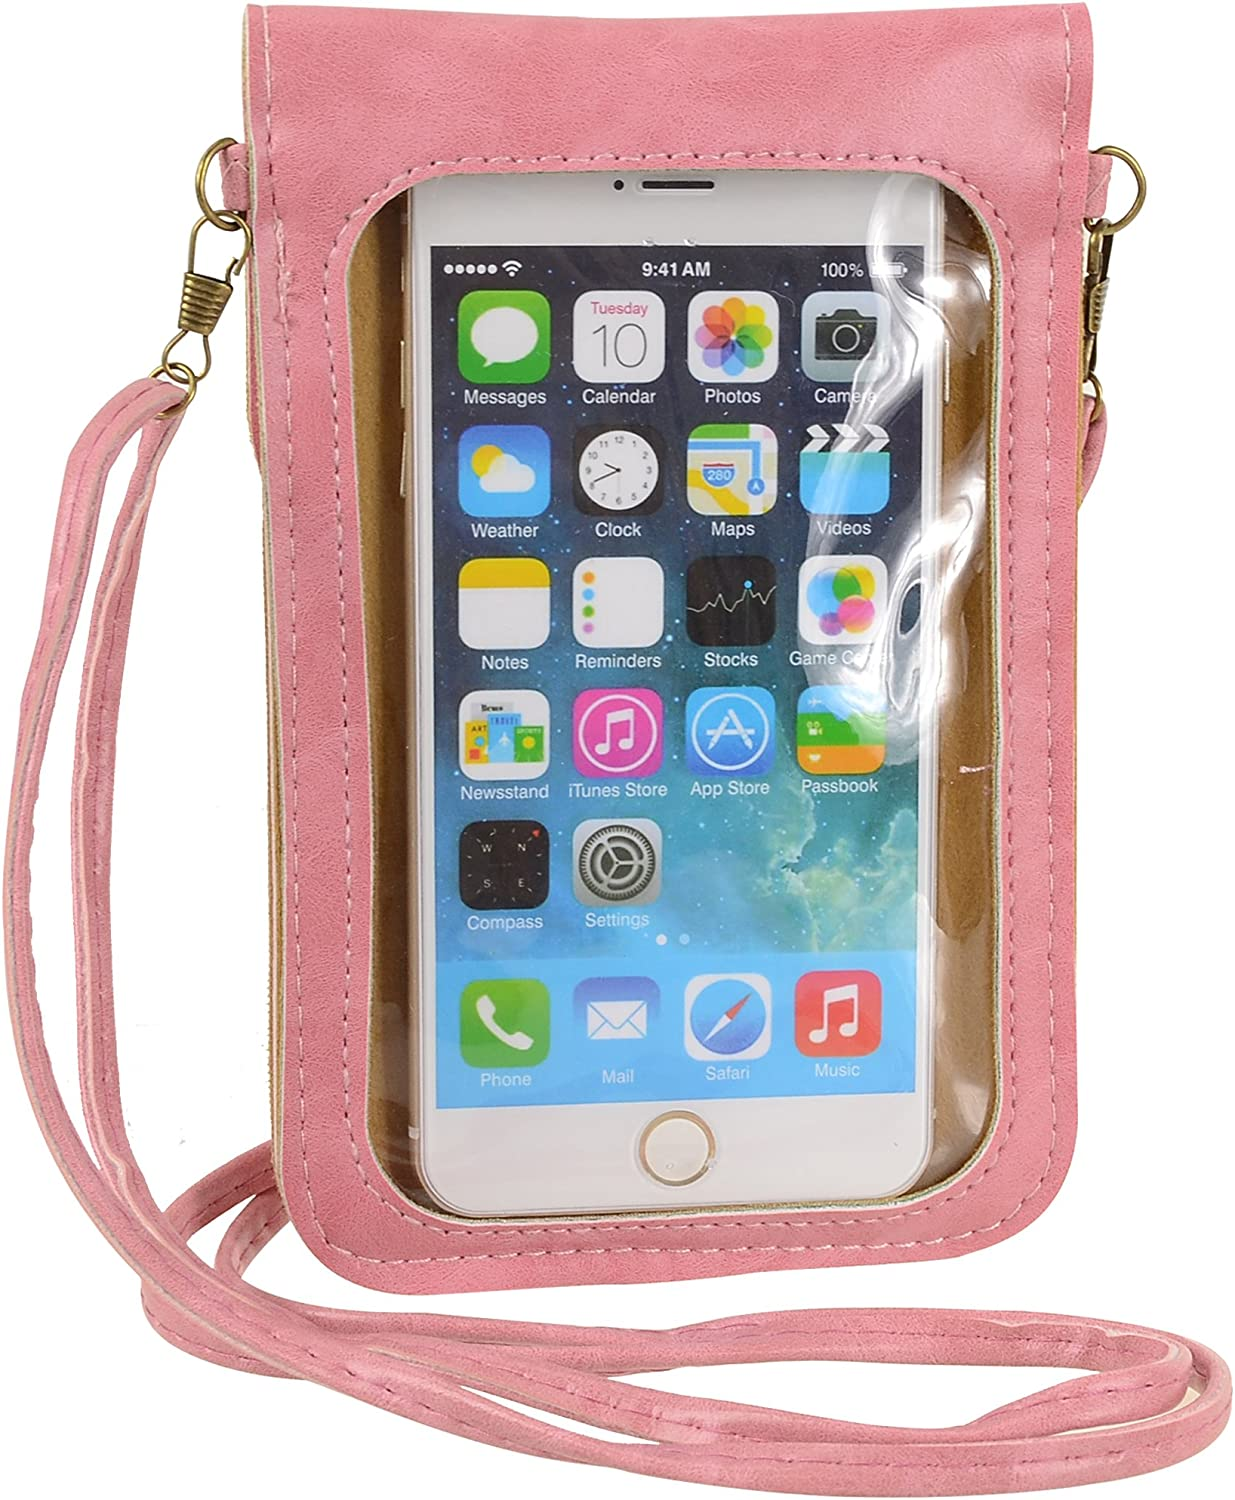 Little Cellphone Purse with Touch Screen Clear Window Travel Crossbody Bag for iPhone 11 Pro Max, XS Max, Galaxy S10 Plus S9+, A10S A10, Pixel 3 XL, 2XL Moto G8 Play Z4, Z3, OnePlus 6T BLU G90 (Pink)